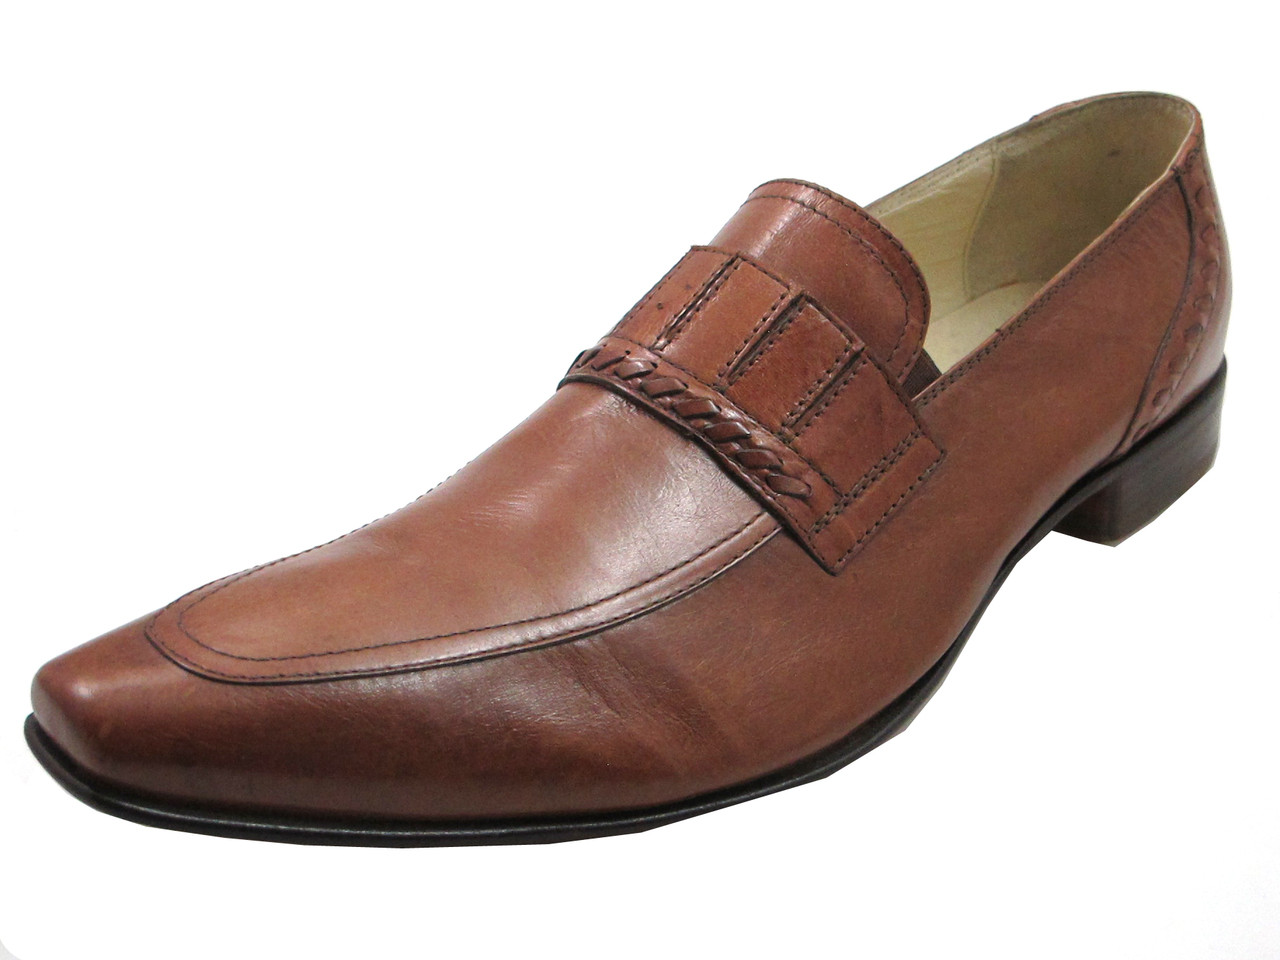 Giampiero Ncola 11093 Menu0026#39;s Italian Loafers Brown - Davinci Shoes New York